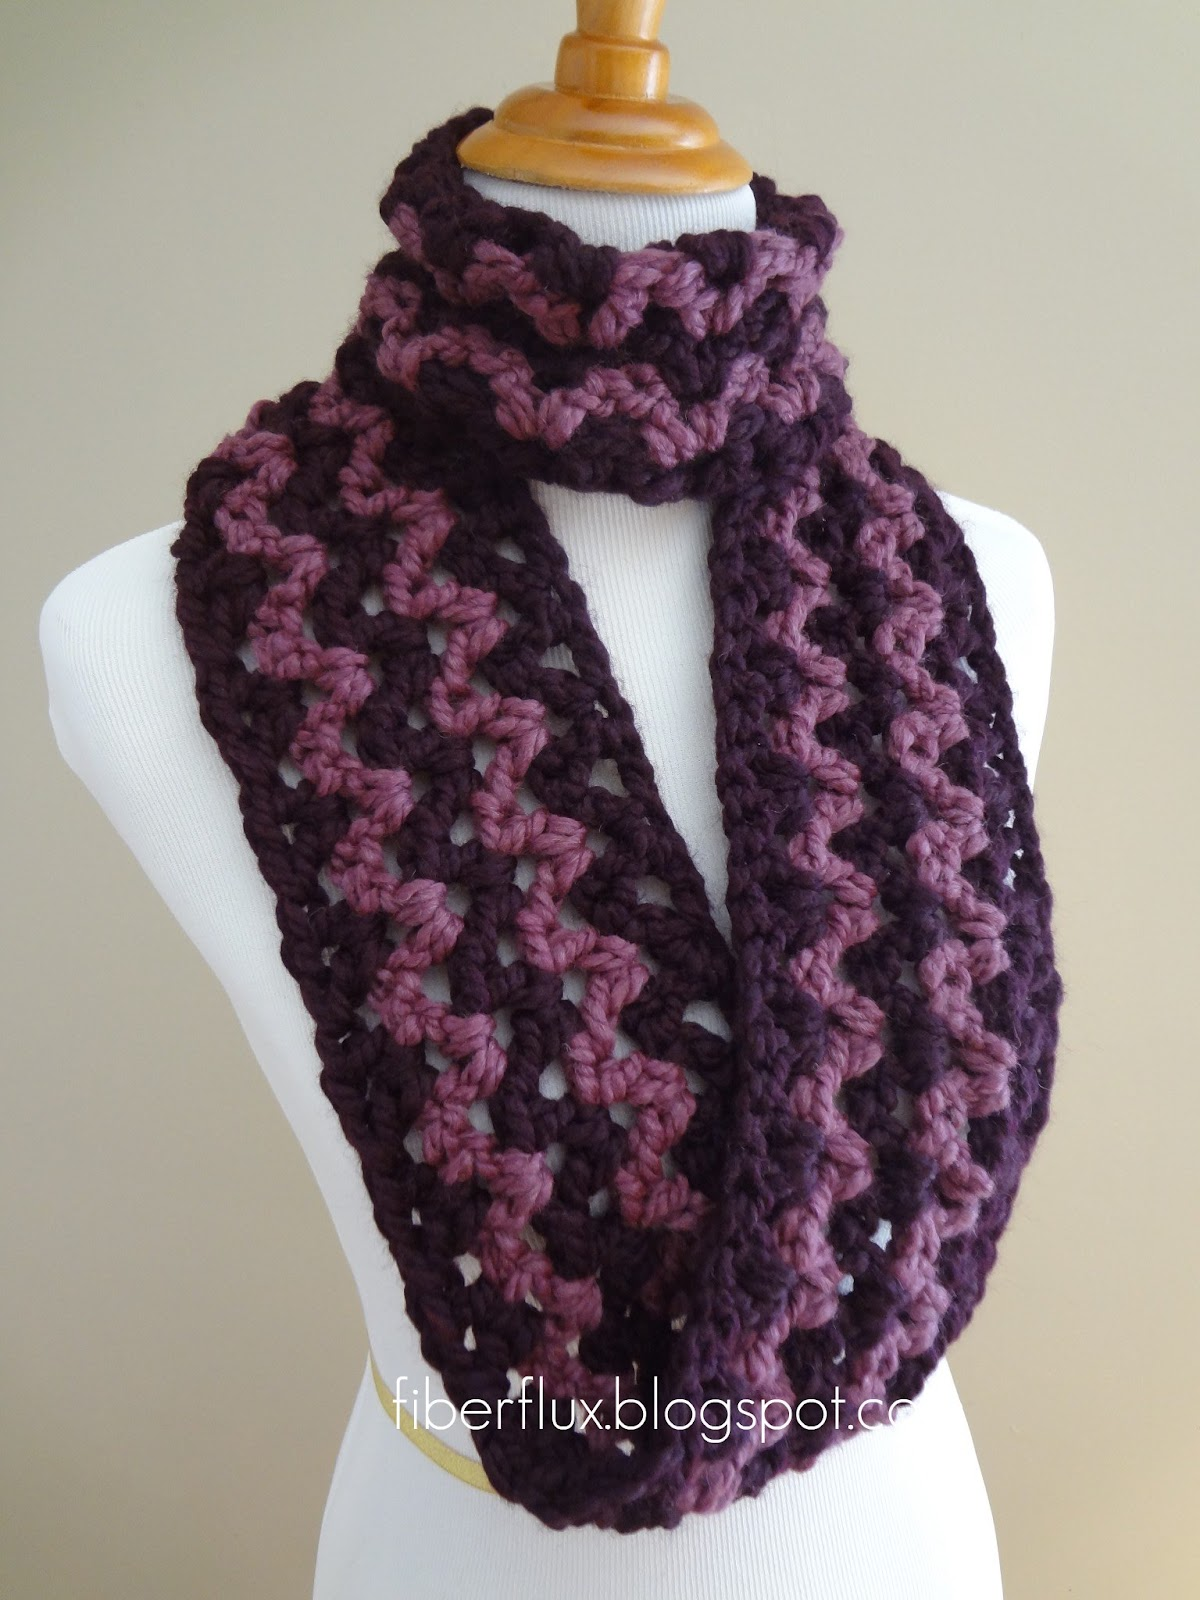 Free Crochet Scarf Patterns For Bulky Yarn : Easy Crochet Scarves Free crochet pattern.